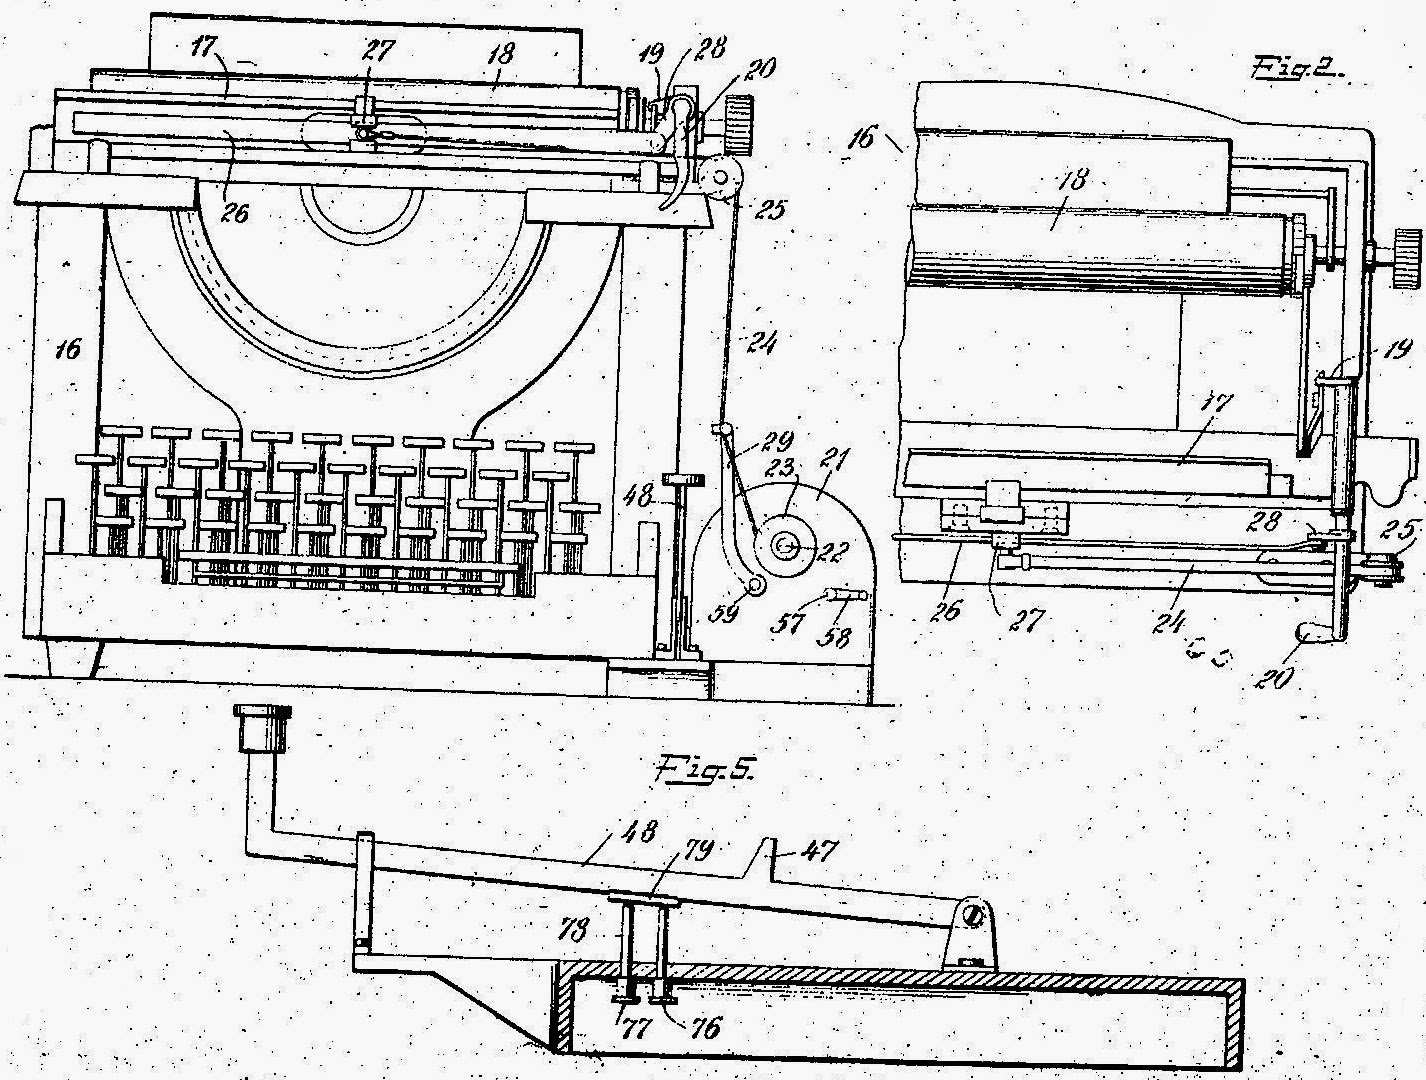 oz.Typewriter: Anderson Automatic Carriage Return for